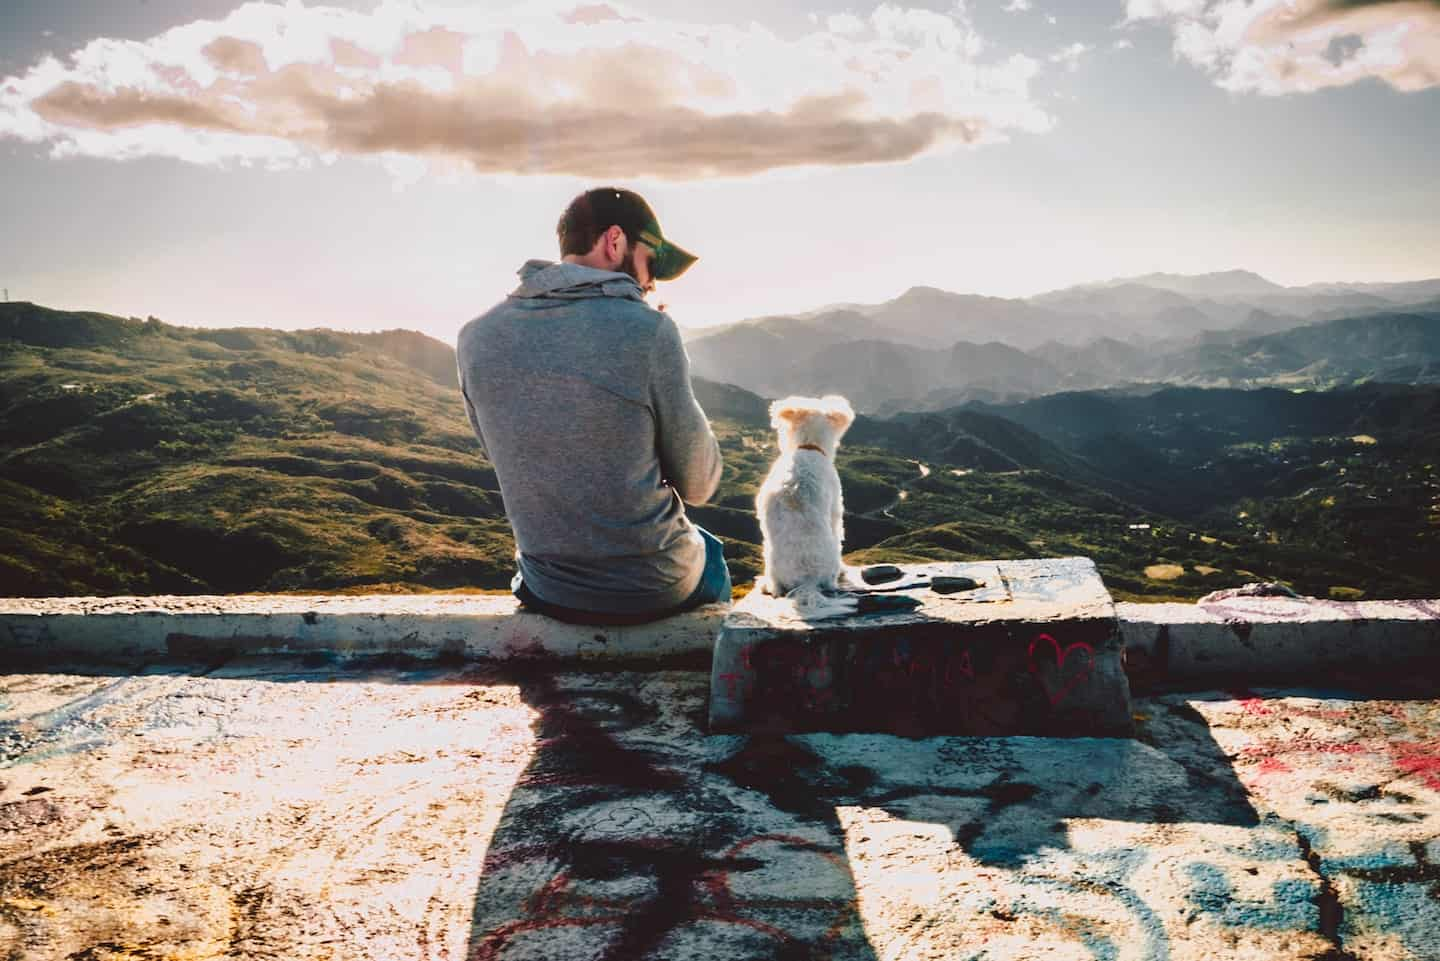 A Dog and Owner enjoying the countryside